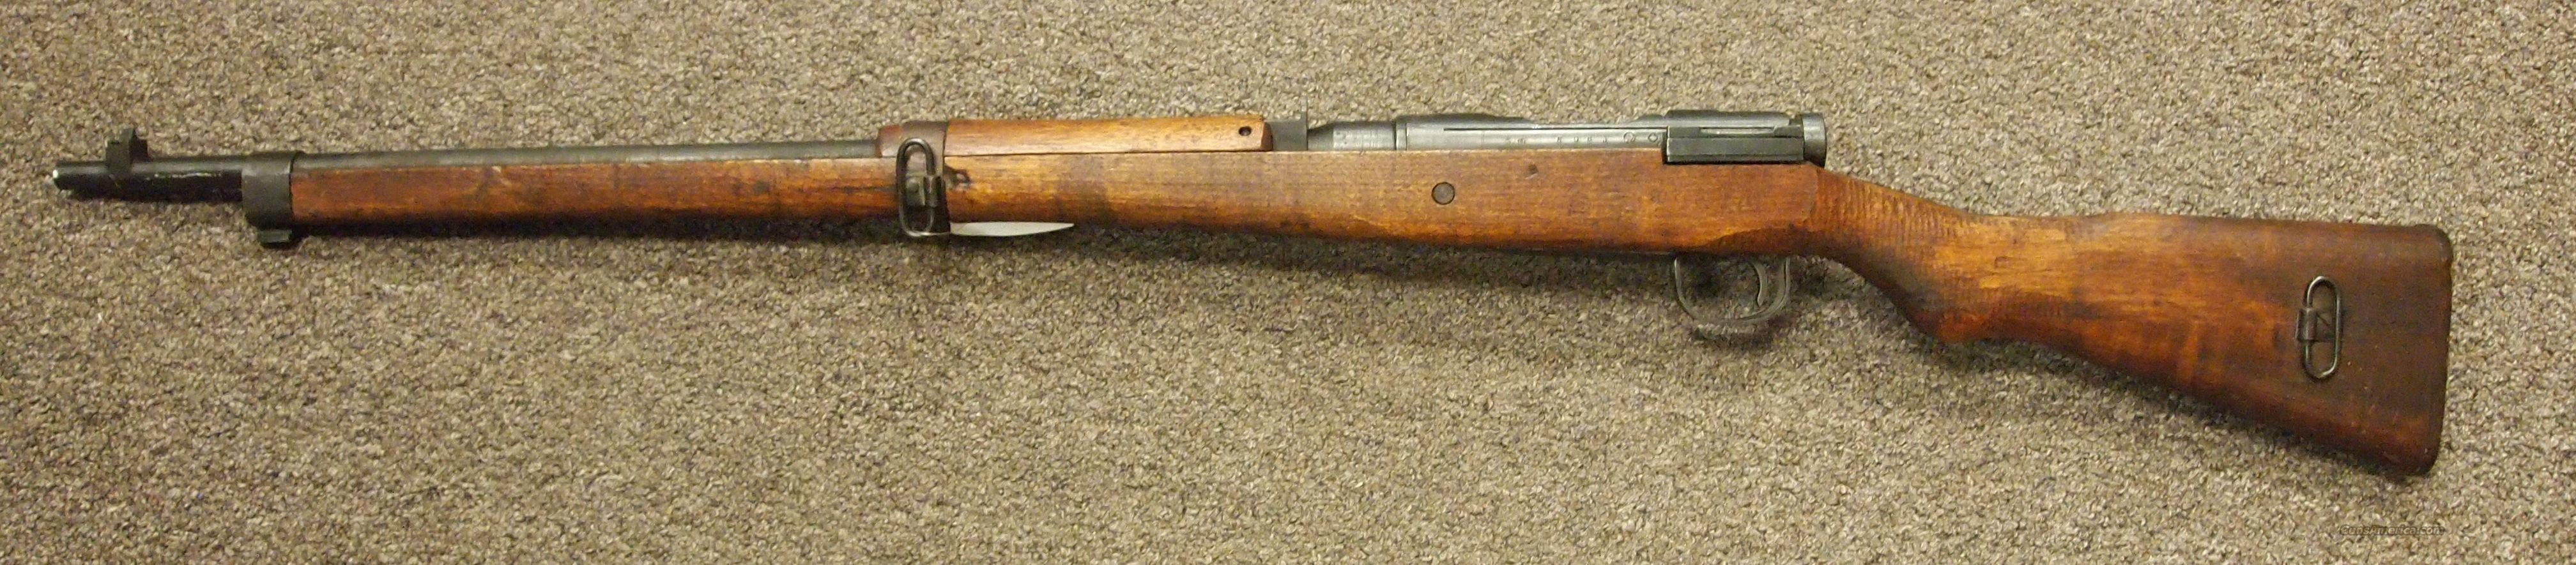 Japanese Arisaka Type 99 7.7JAP  Guns > Rifles > Military Misc. Rifles Non-US > Other